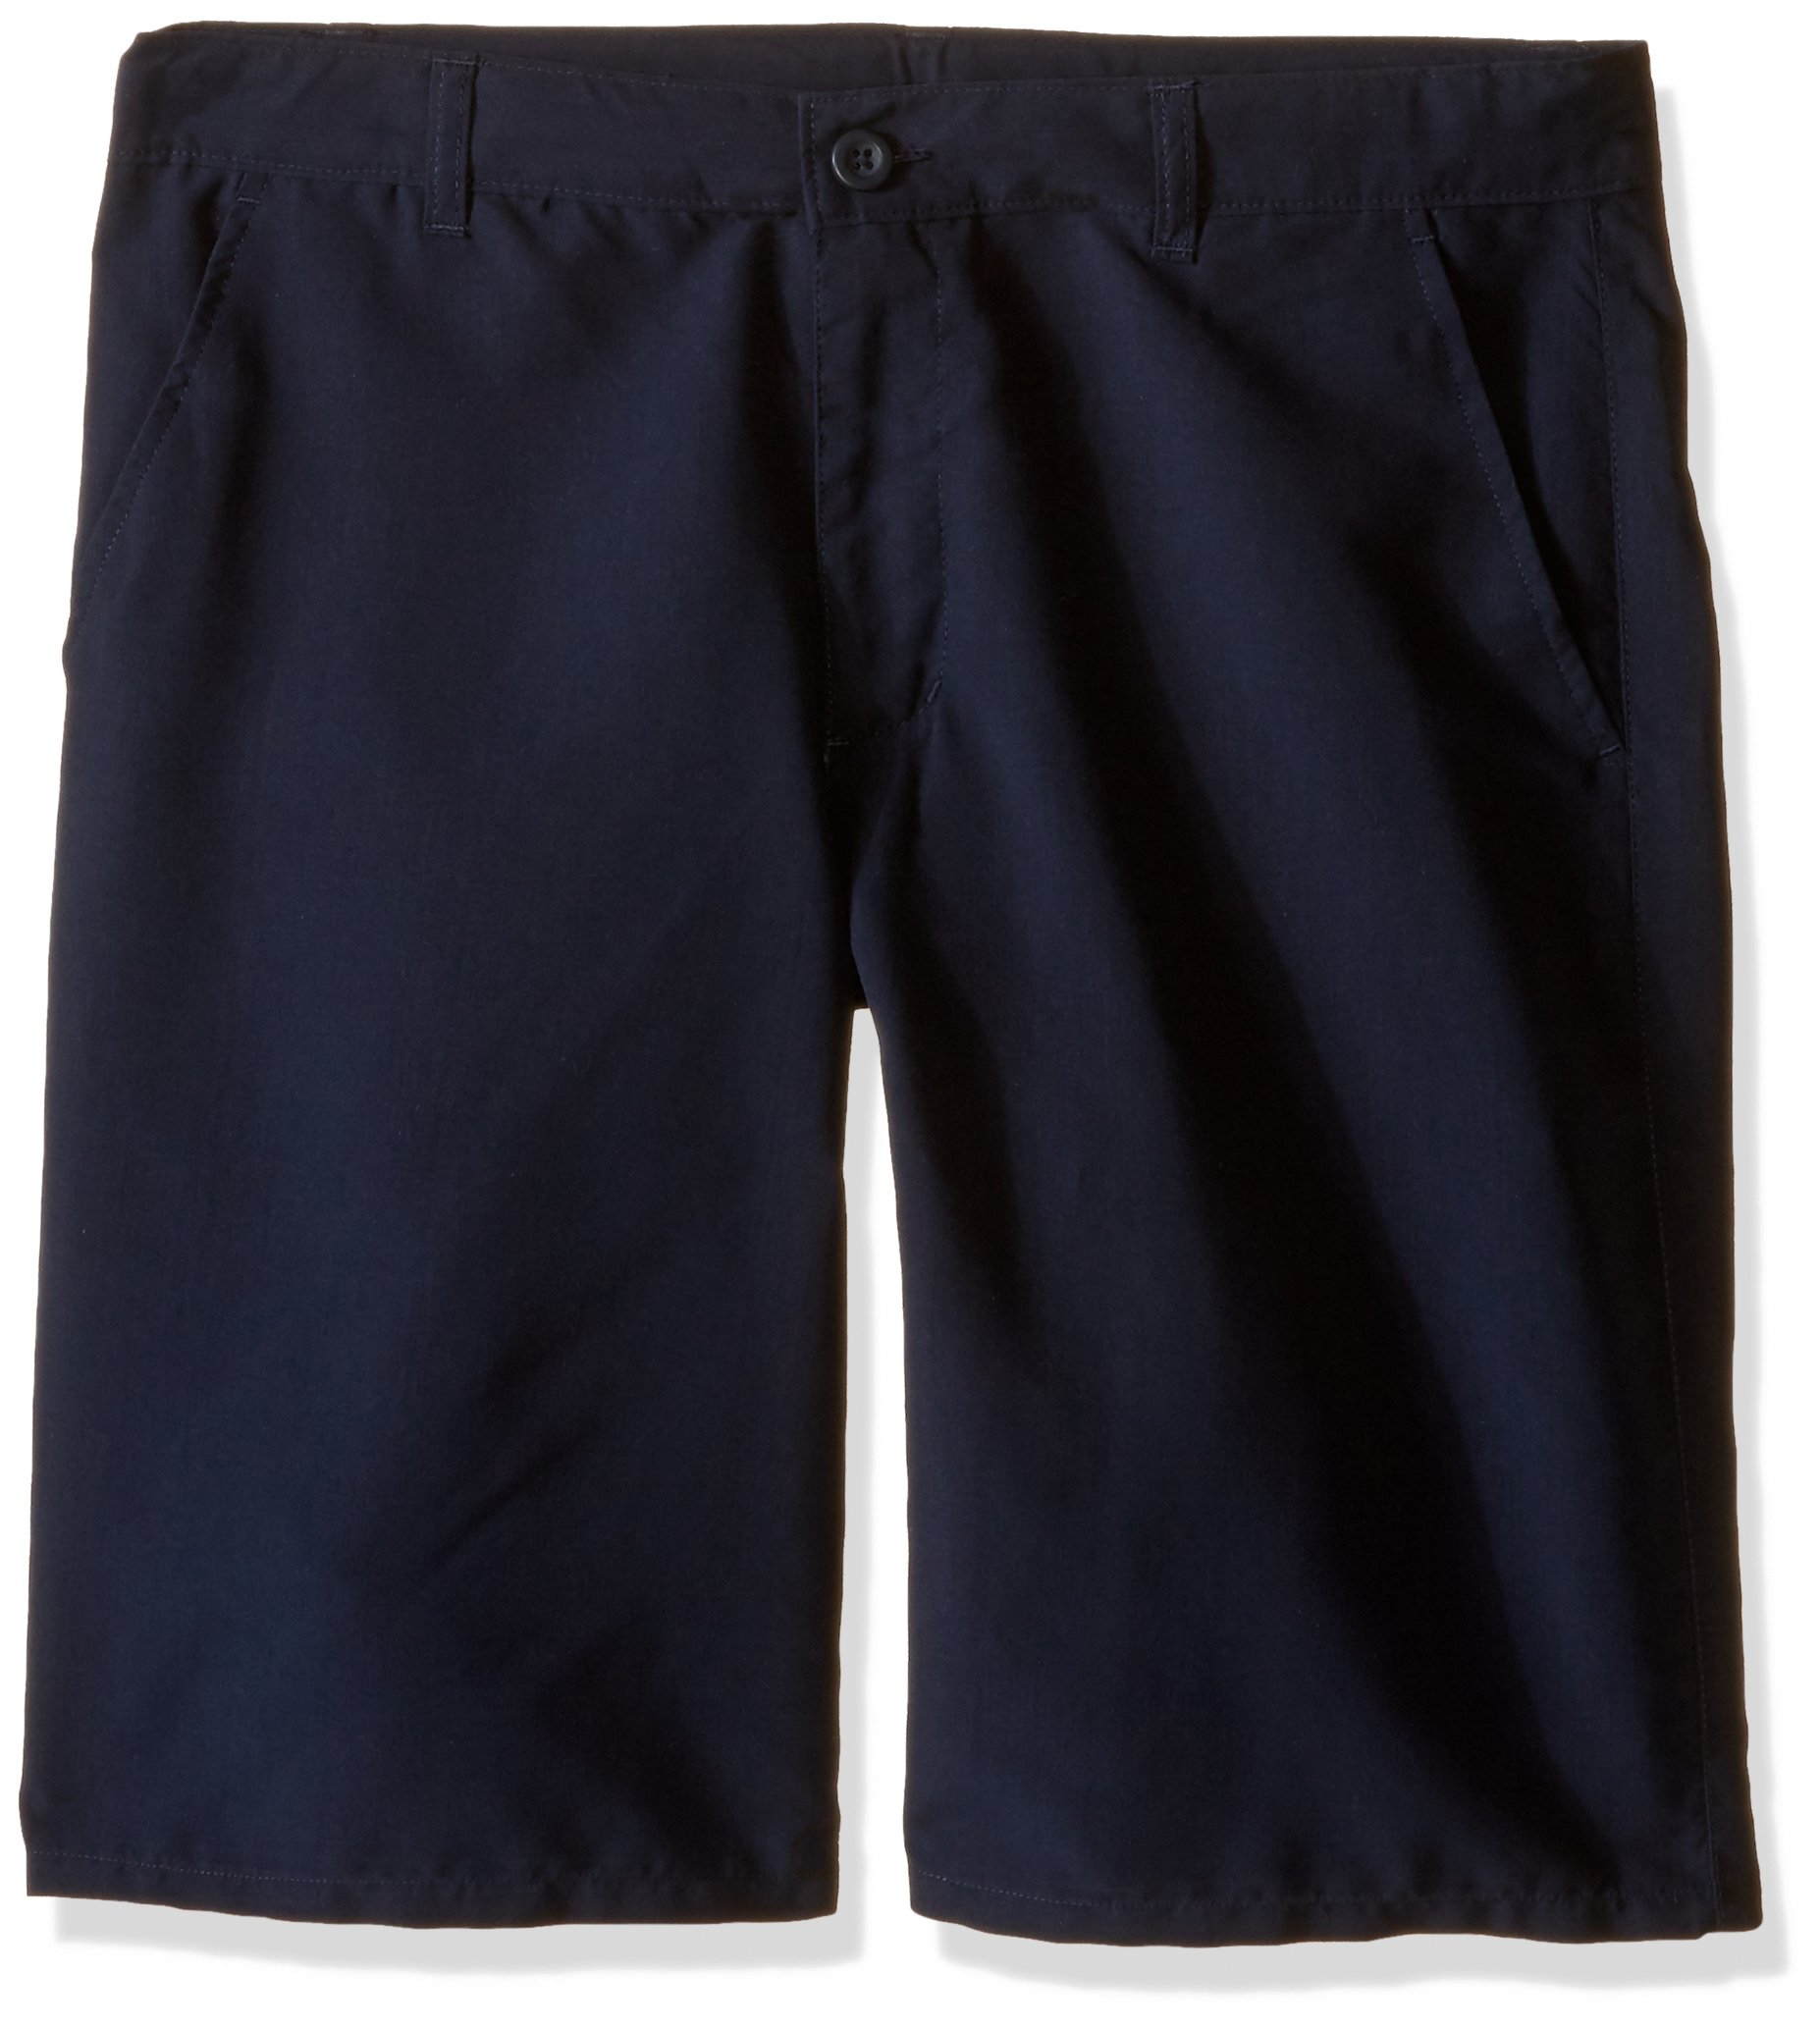 Nautica Boys' Big Boys' Uniform Performance Short, Navy, 18